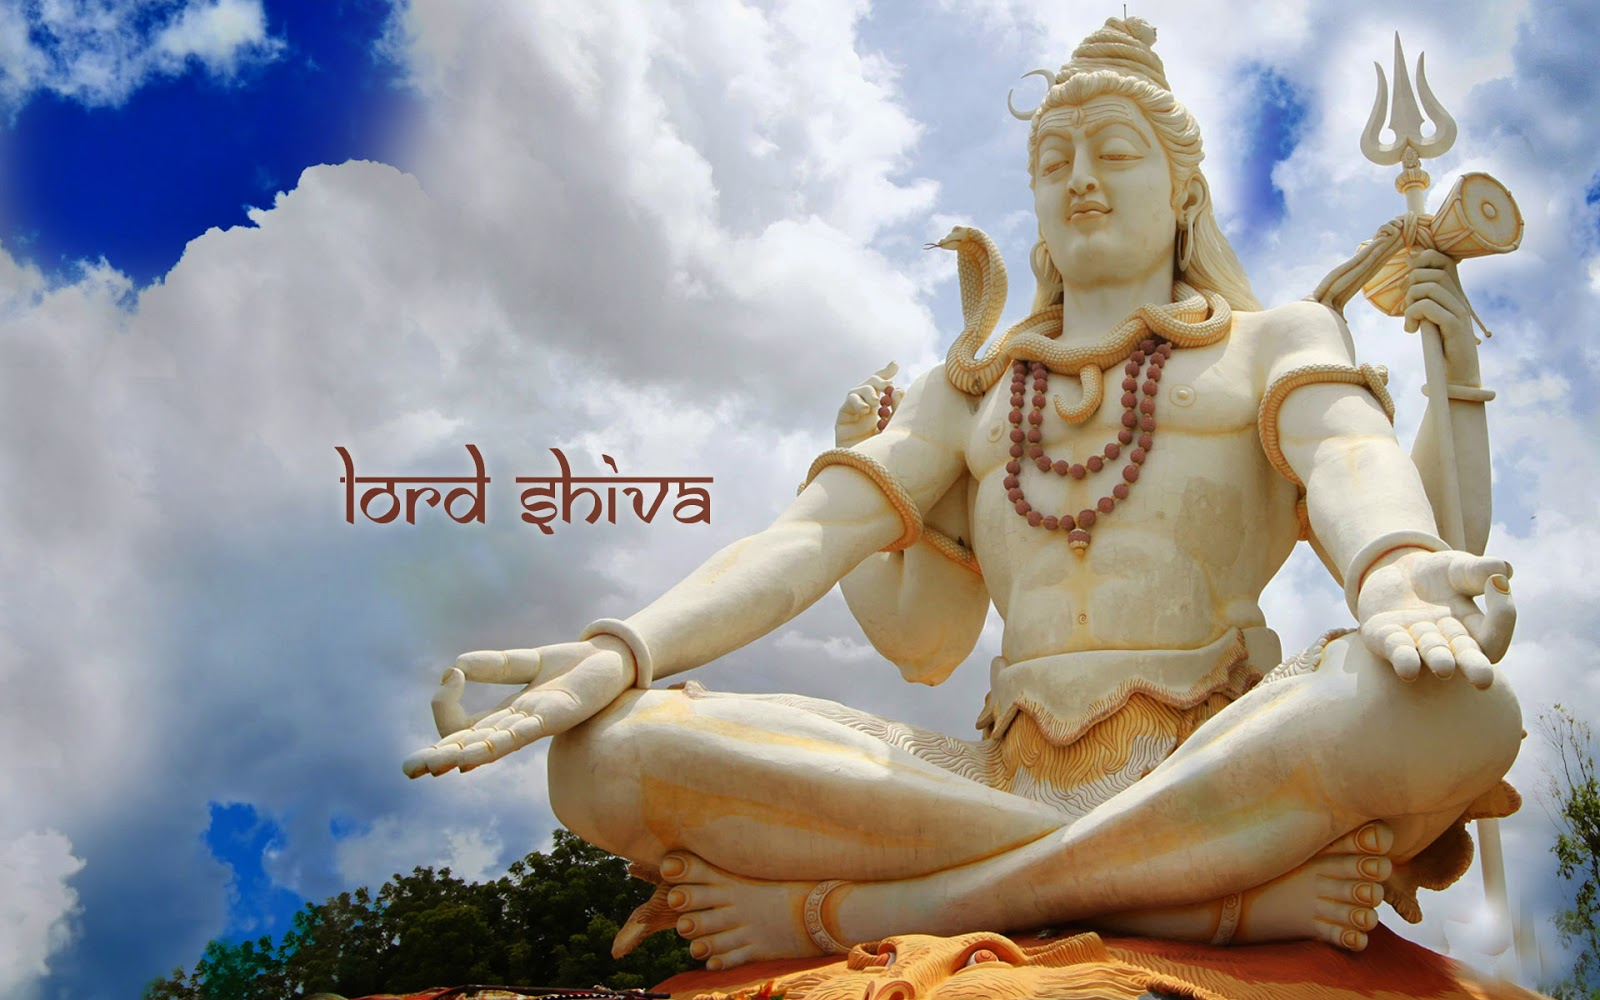 Happy Maha Shivaratri to you and family